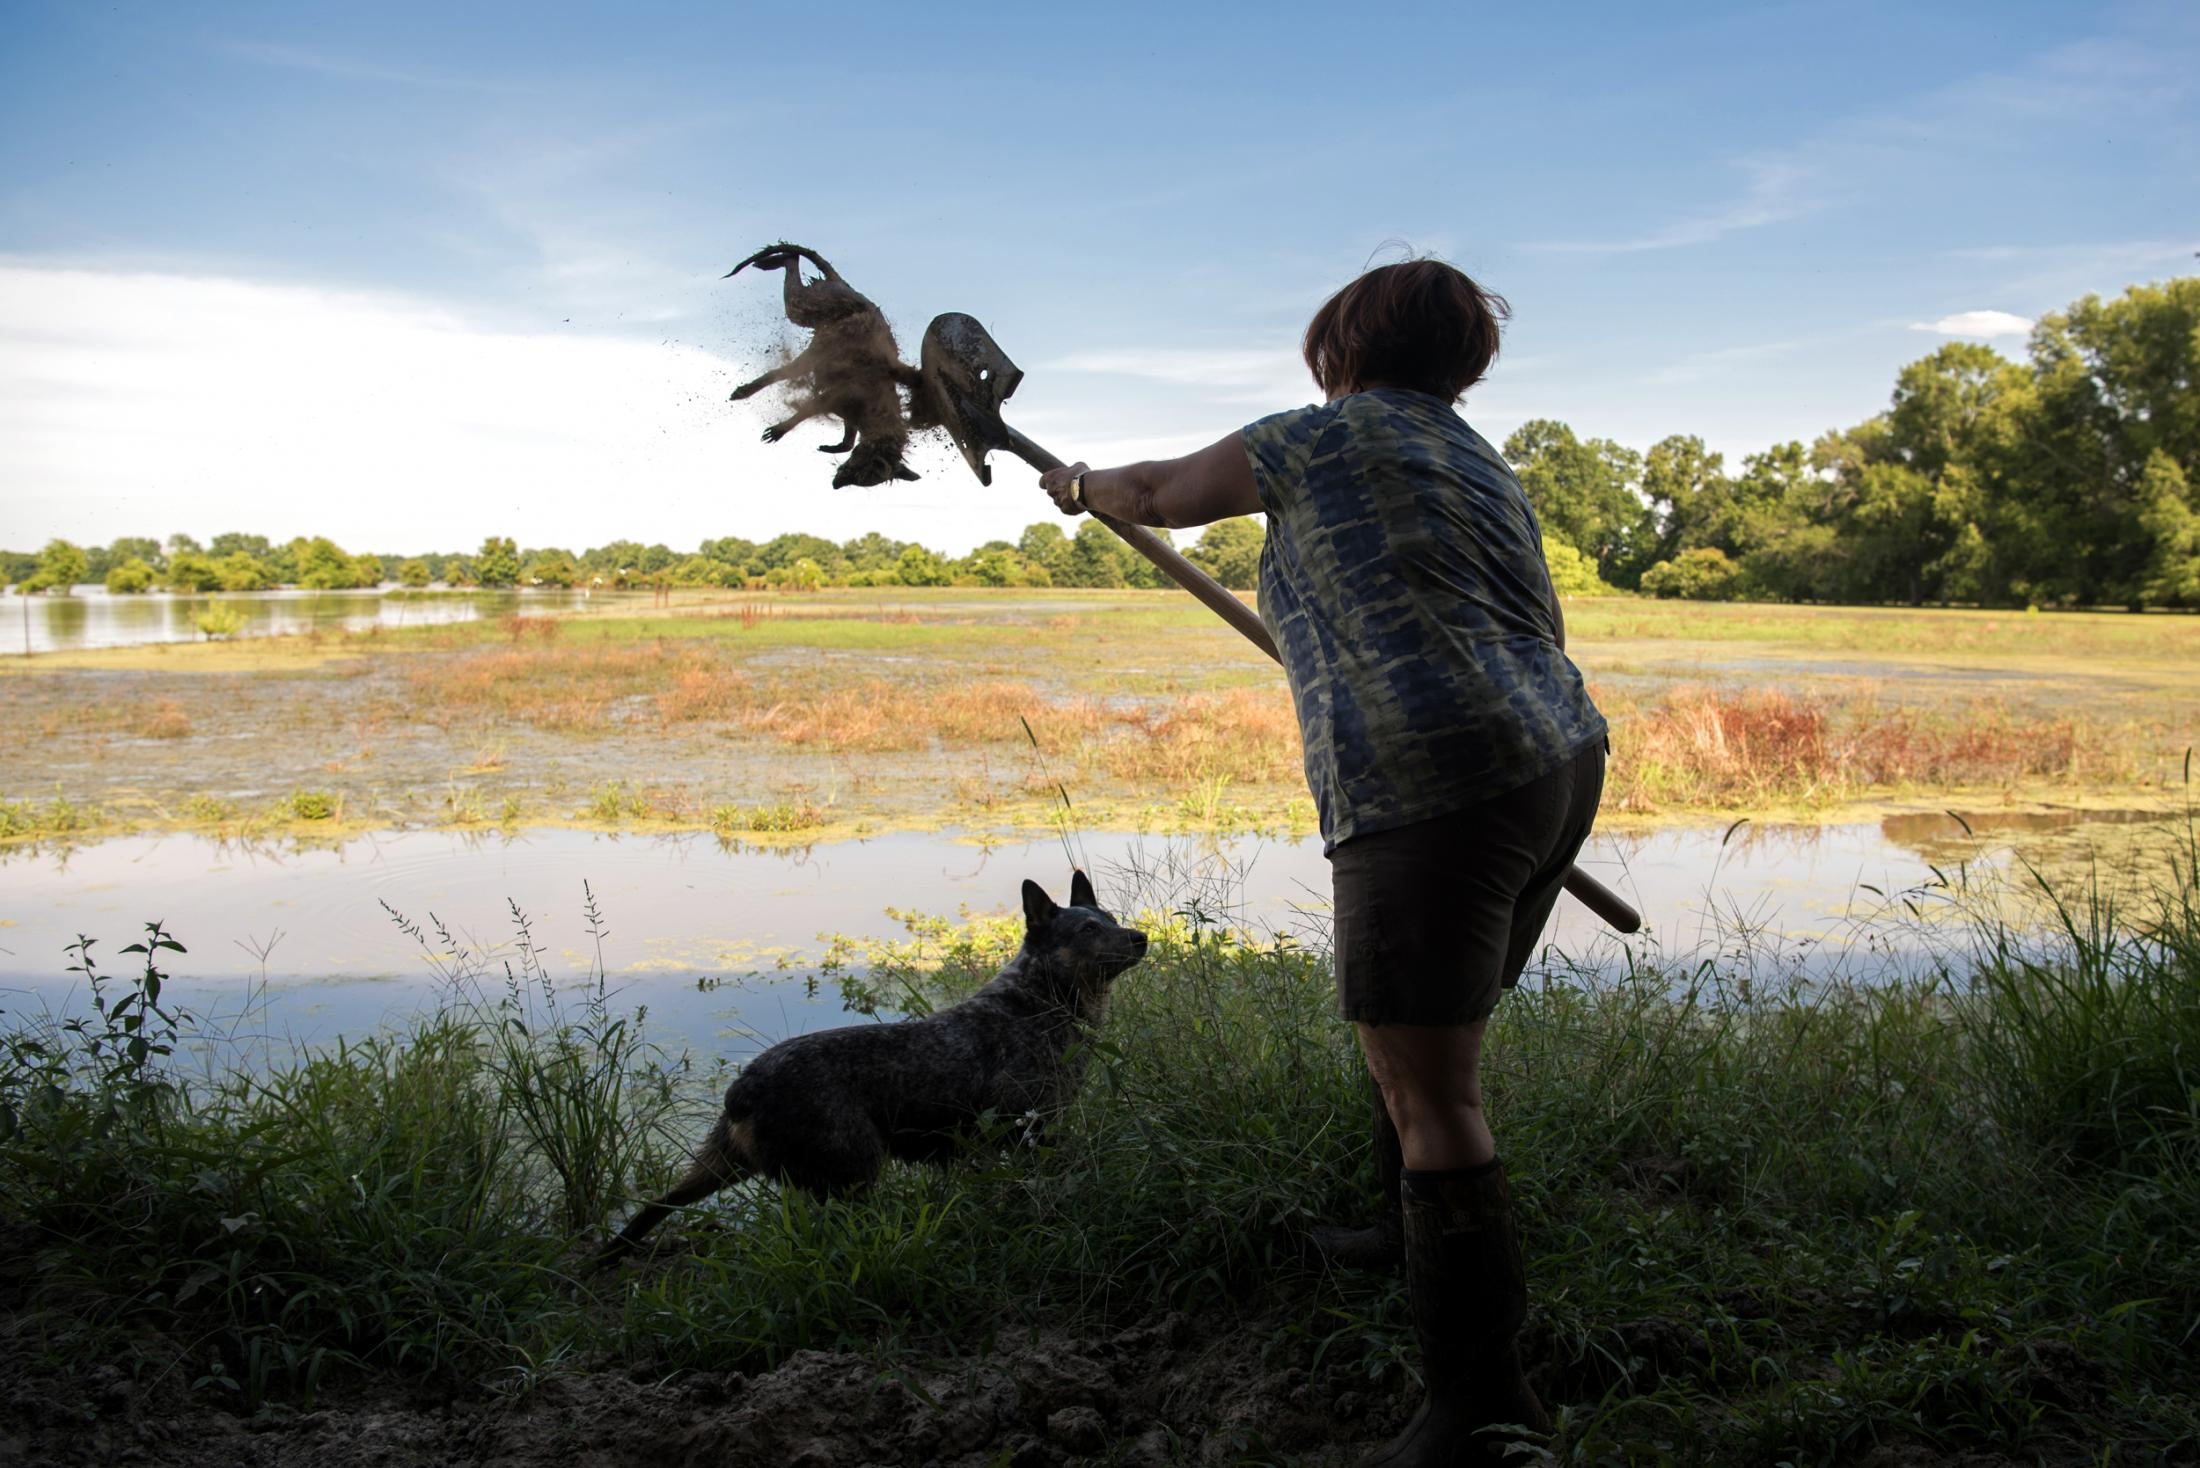 Brenda Browning tosses a dead raccoon into the floodwaters in Valley Park, Mississippi June 14, 2019. Browning found the raccoon inside the levee built around her parent's home.